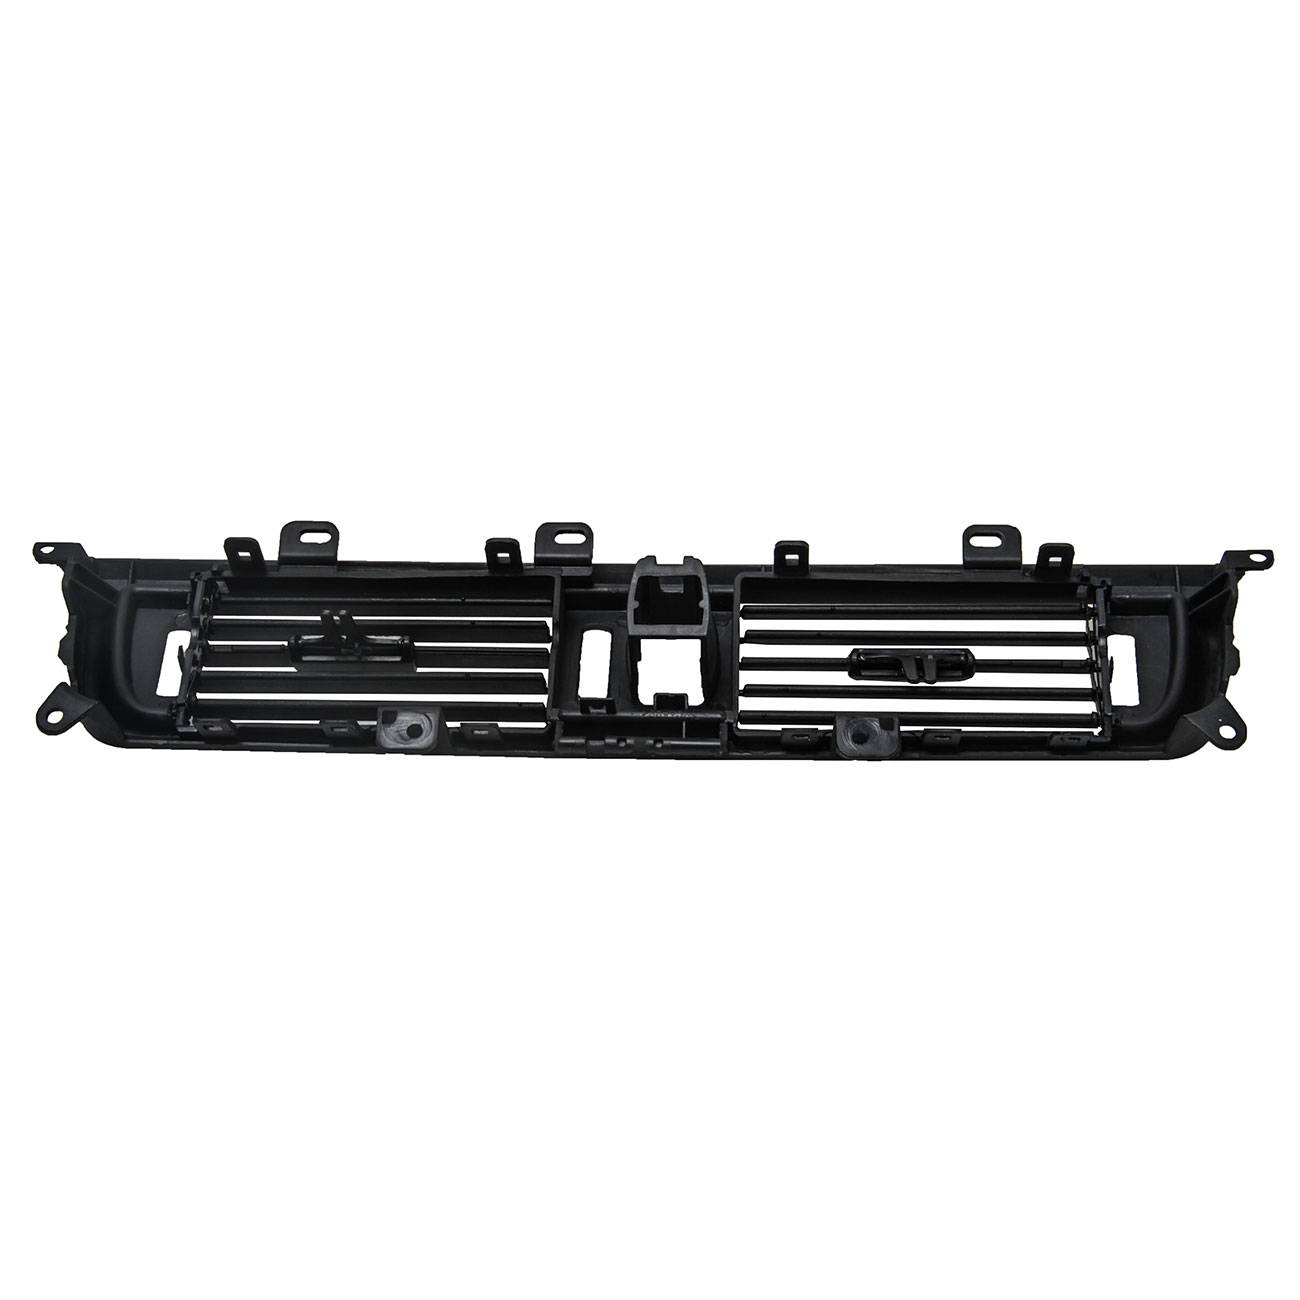 Front Console Grill Dash AC Air Vent For BMW F10 F11 F18 5 Series